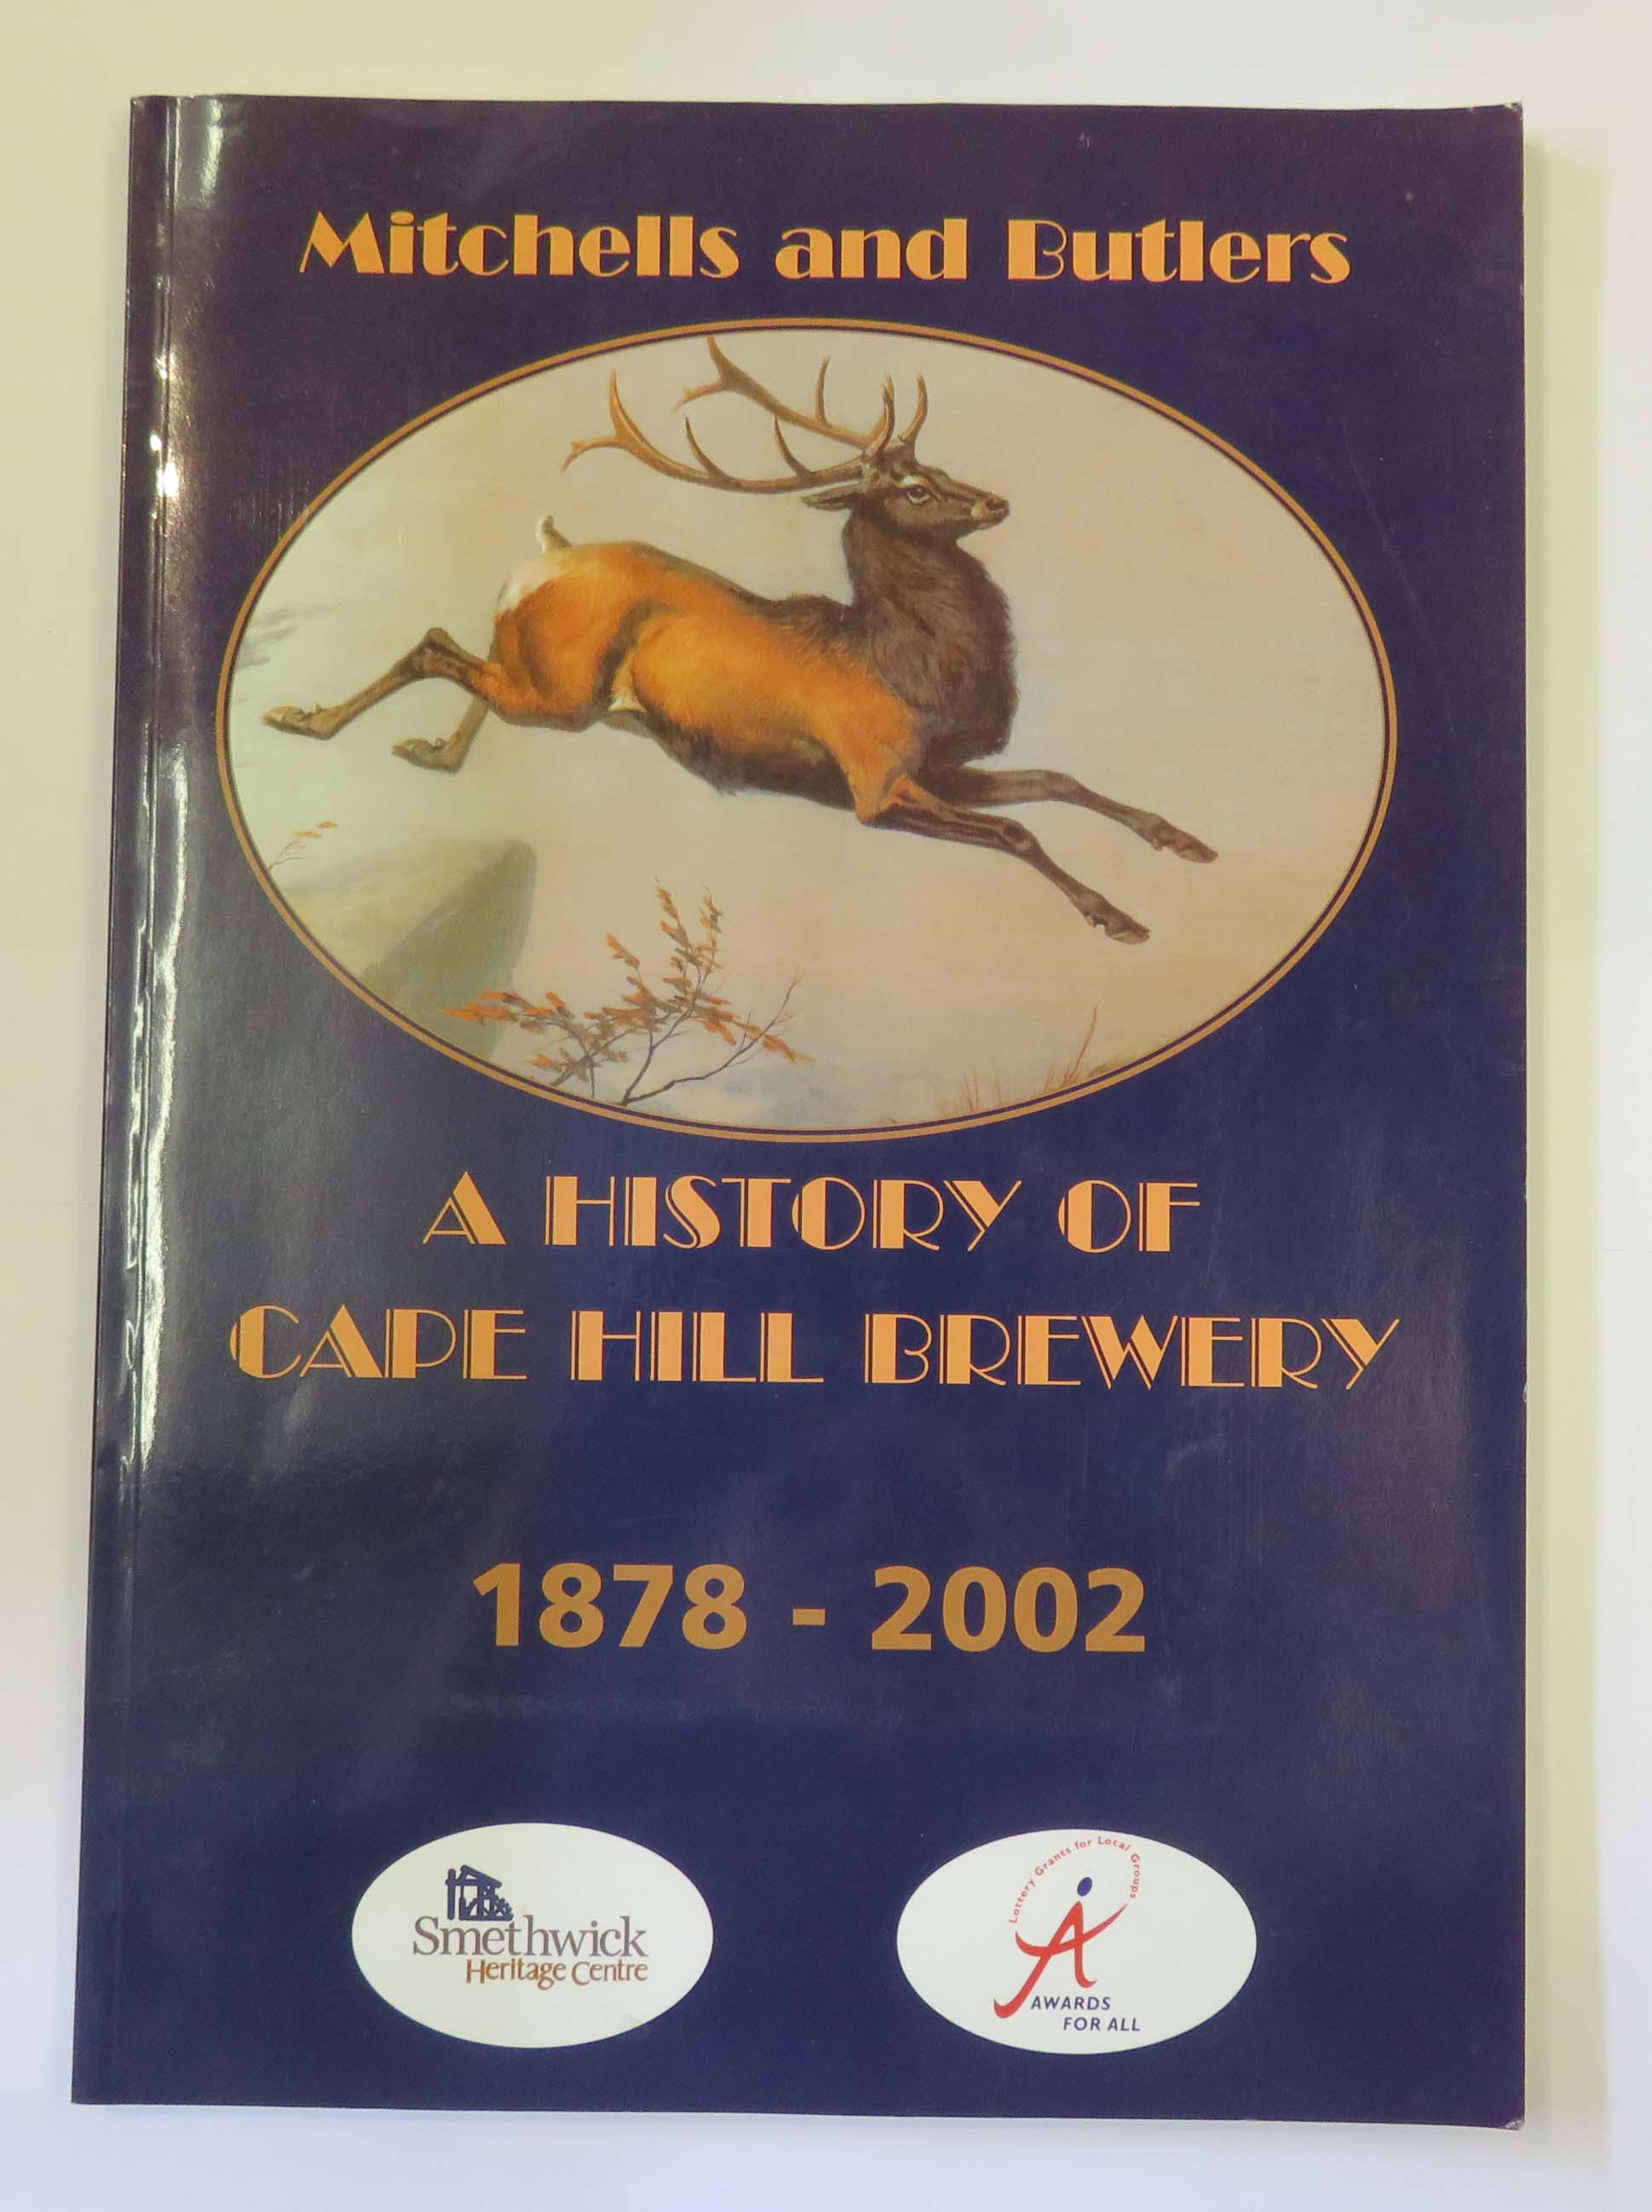 A History of the Cape Hill Brewery 1878-2002